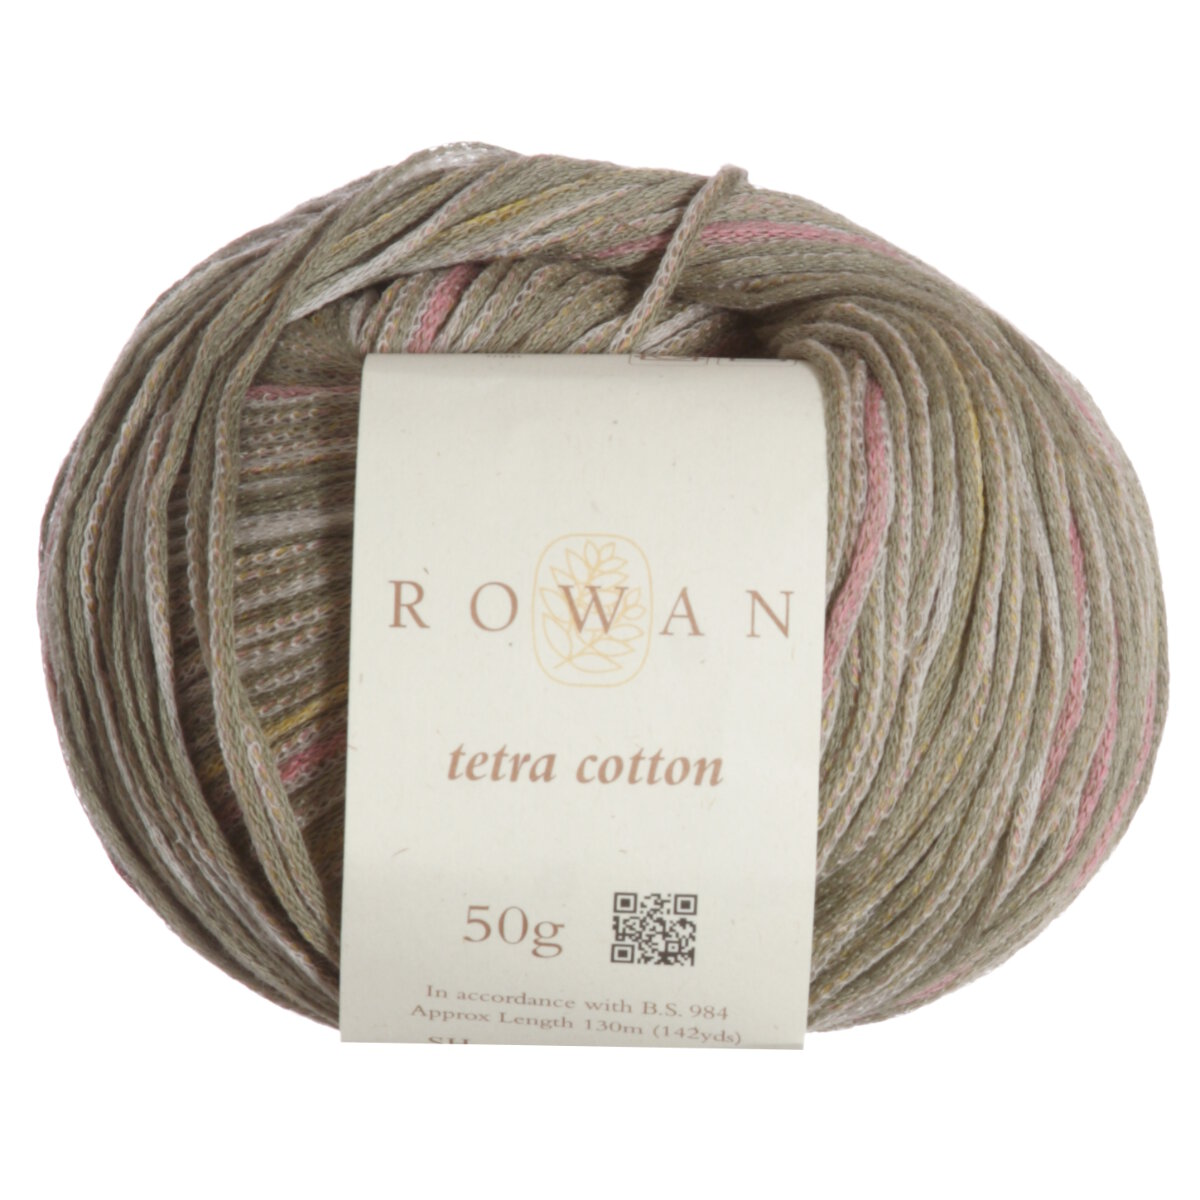 Knitting Patterns Cotton Yarn : Rowan Tetra Cotton Yarn - 01 Iseo at Jimmy Beans Wool